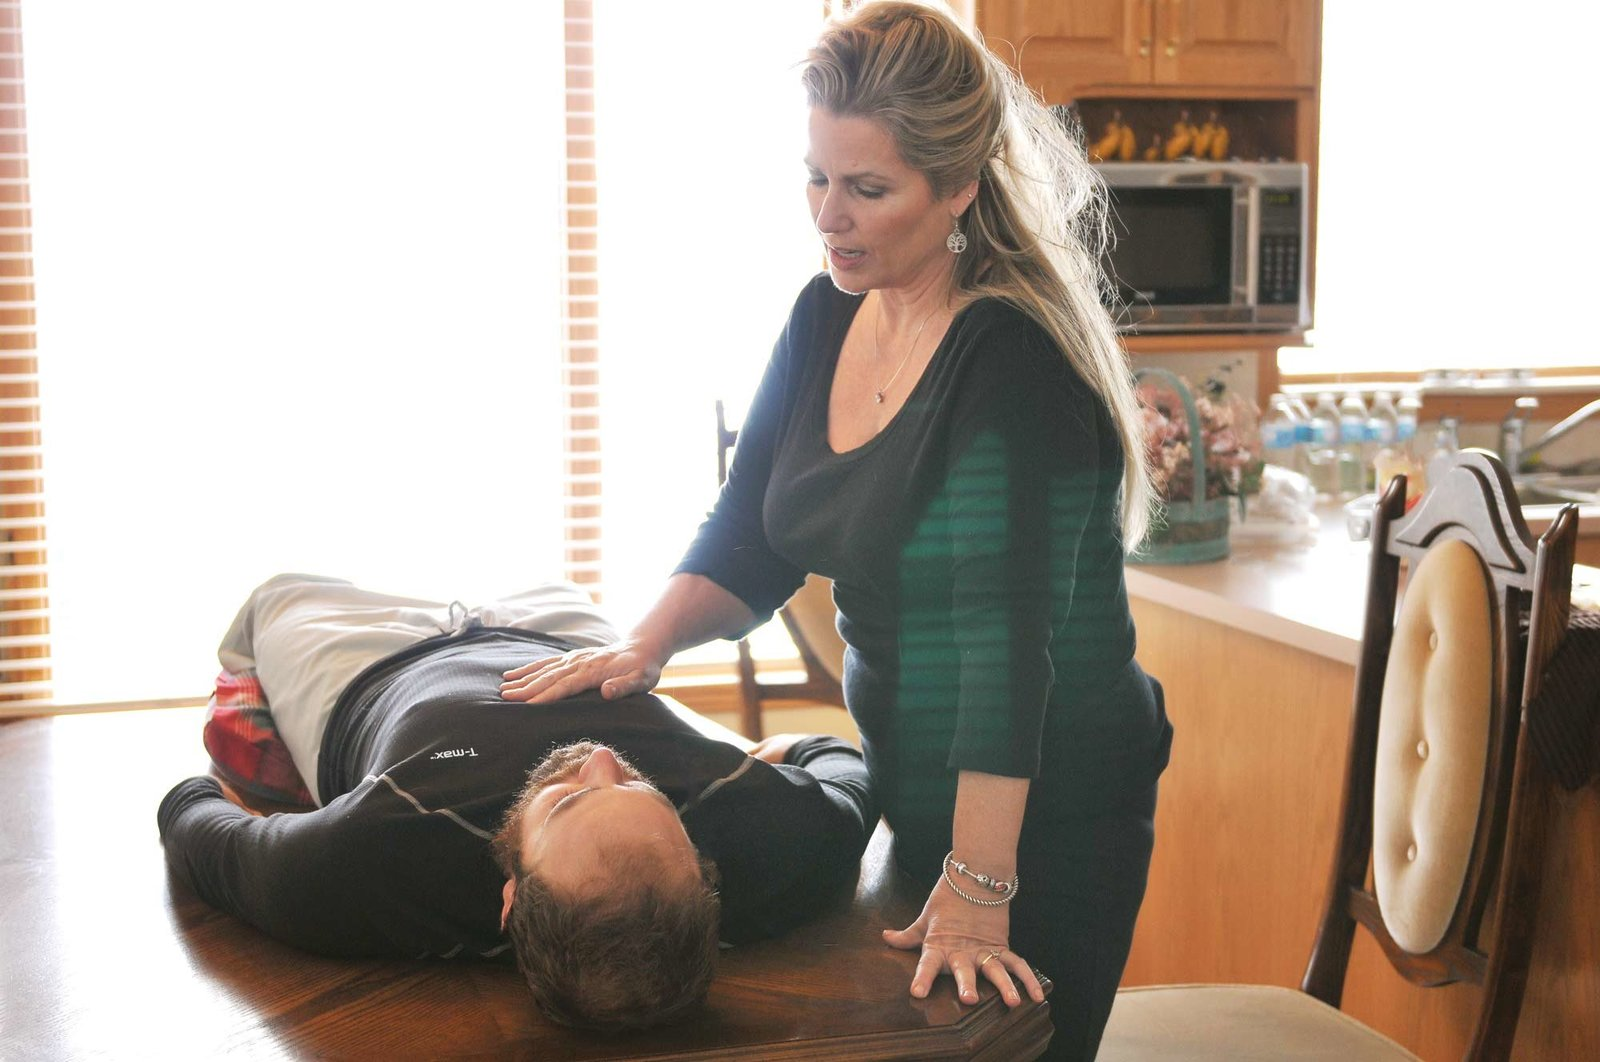 MelodyThomas-working-on-JM-Massage-Therapist-by-Melissa-E-Earle-Mee